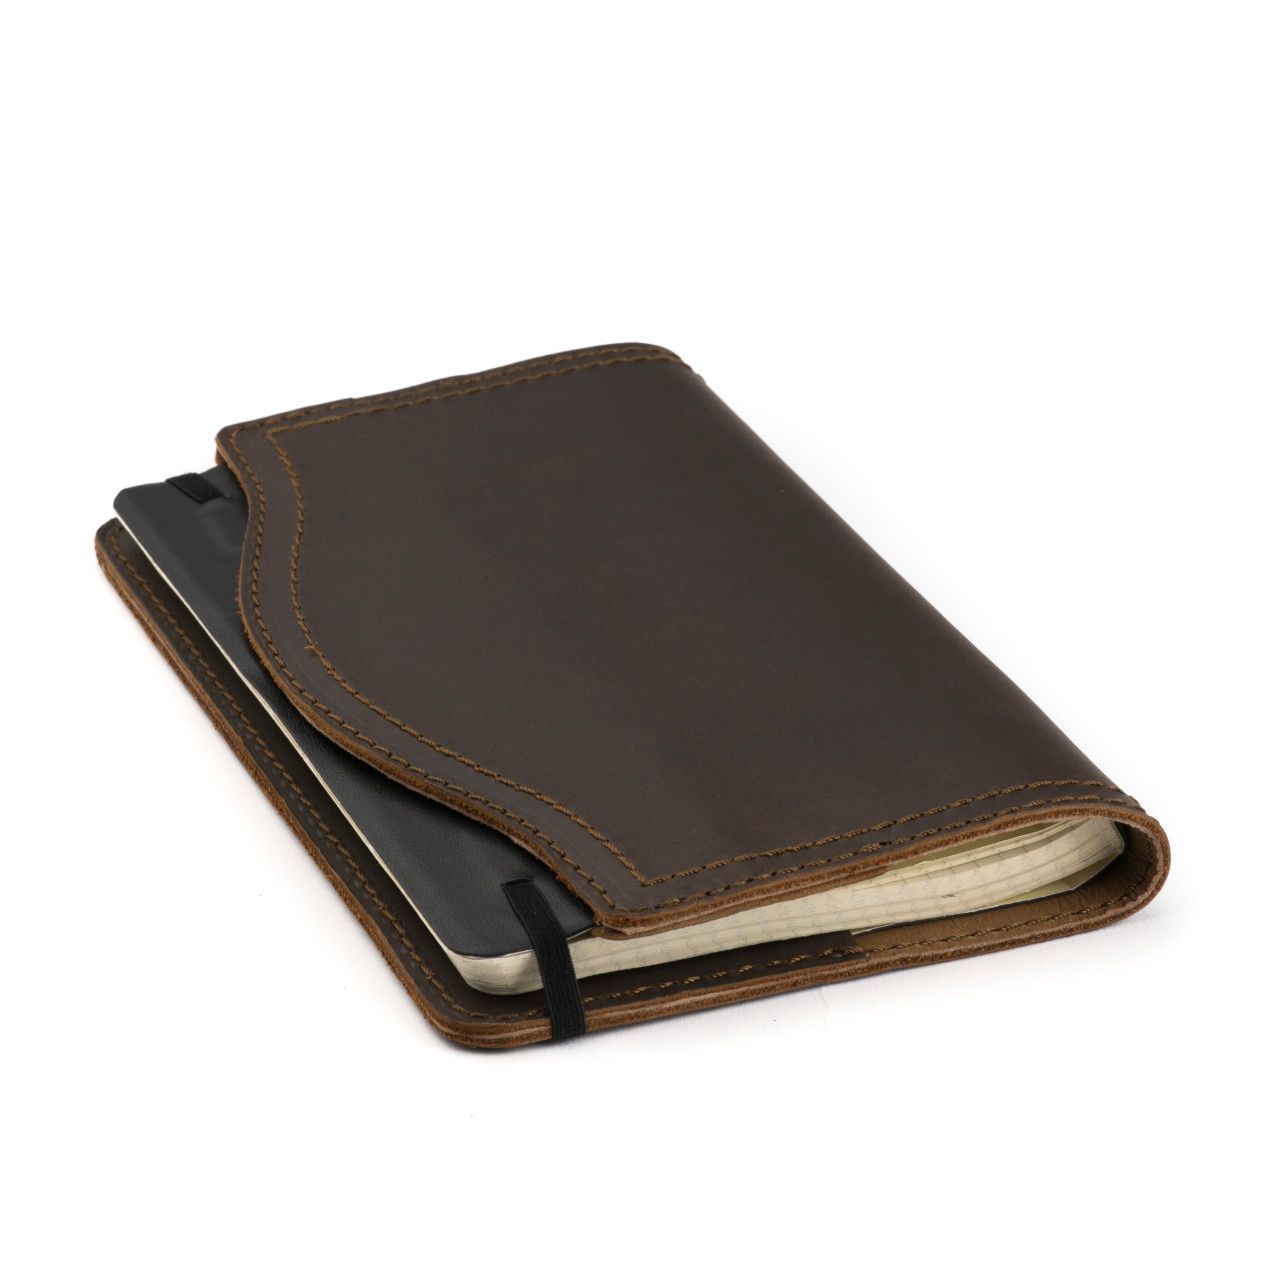 leather notebook cover medium in dark coffee brown leather